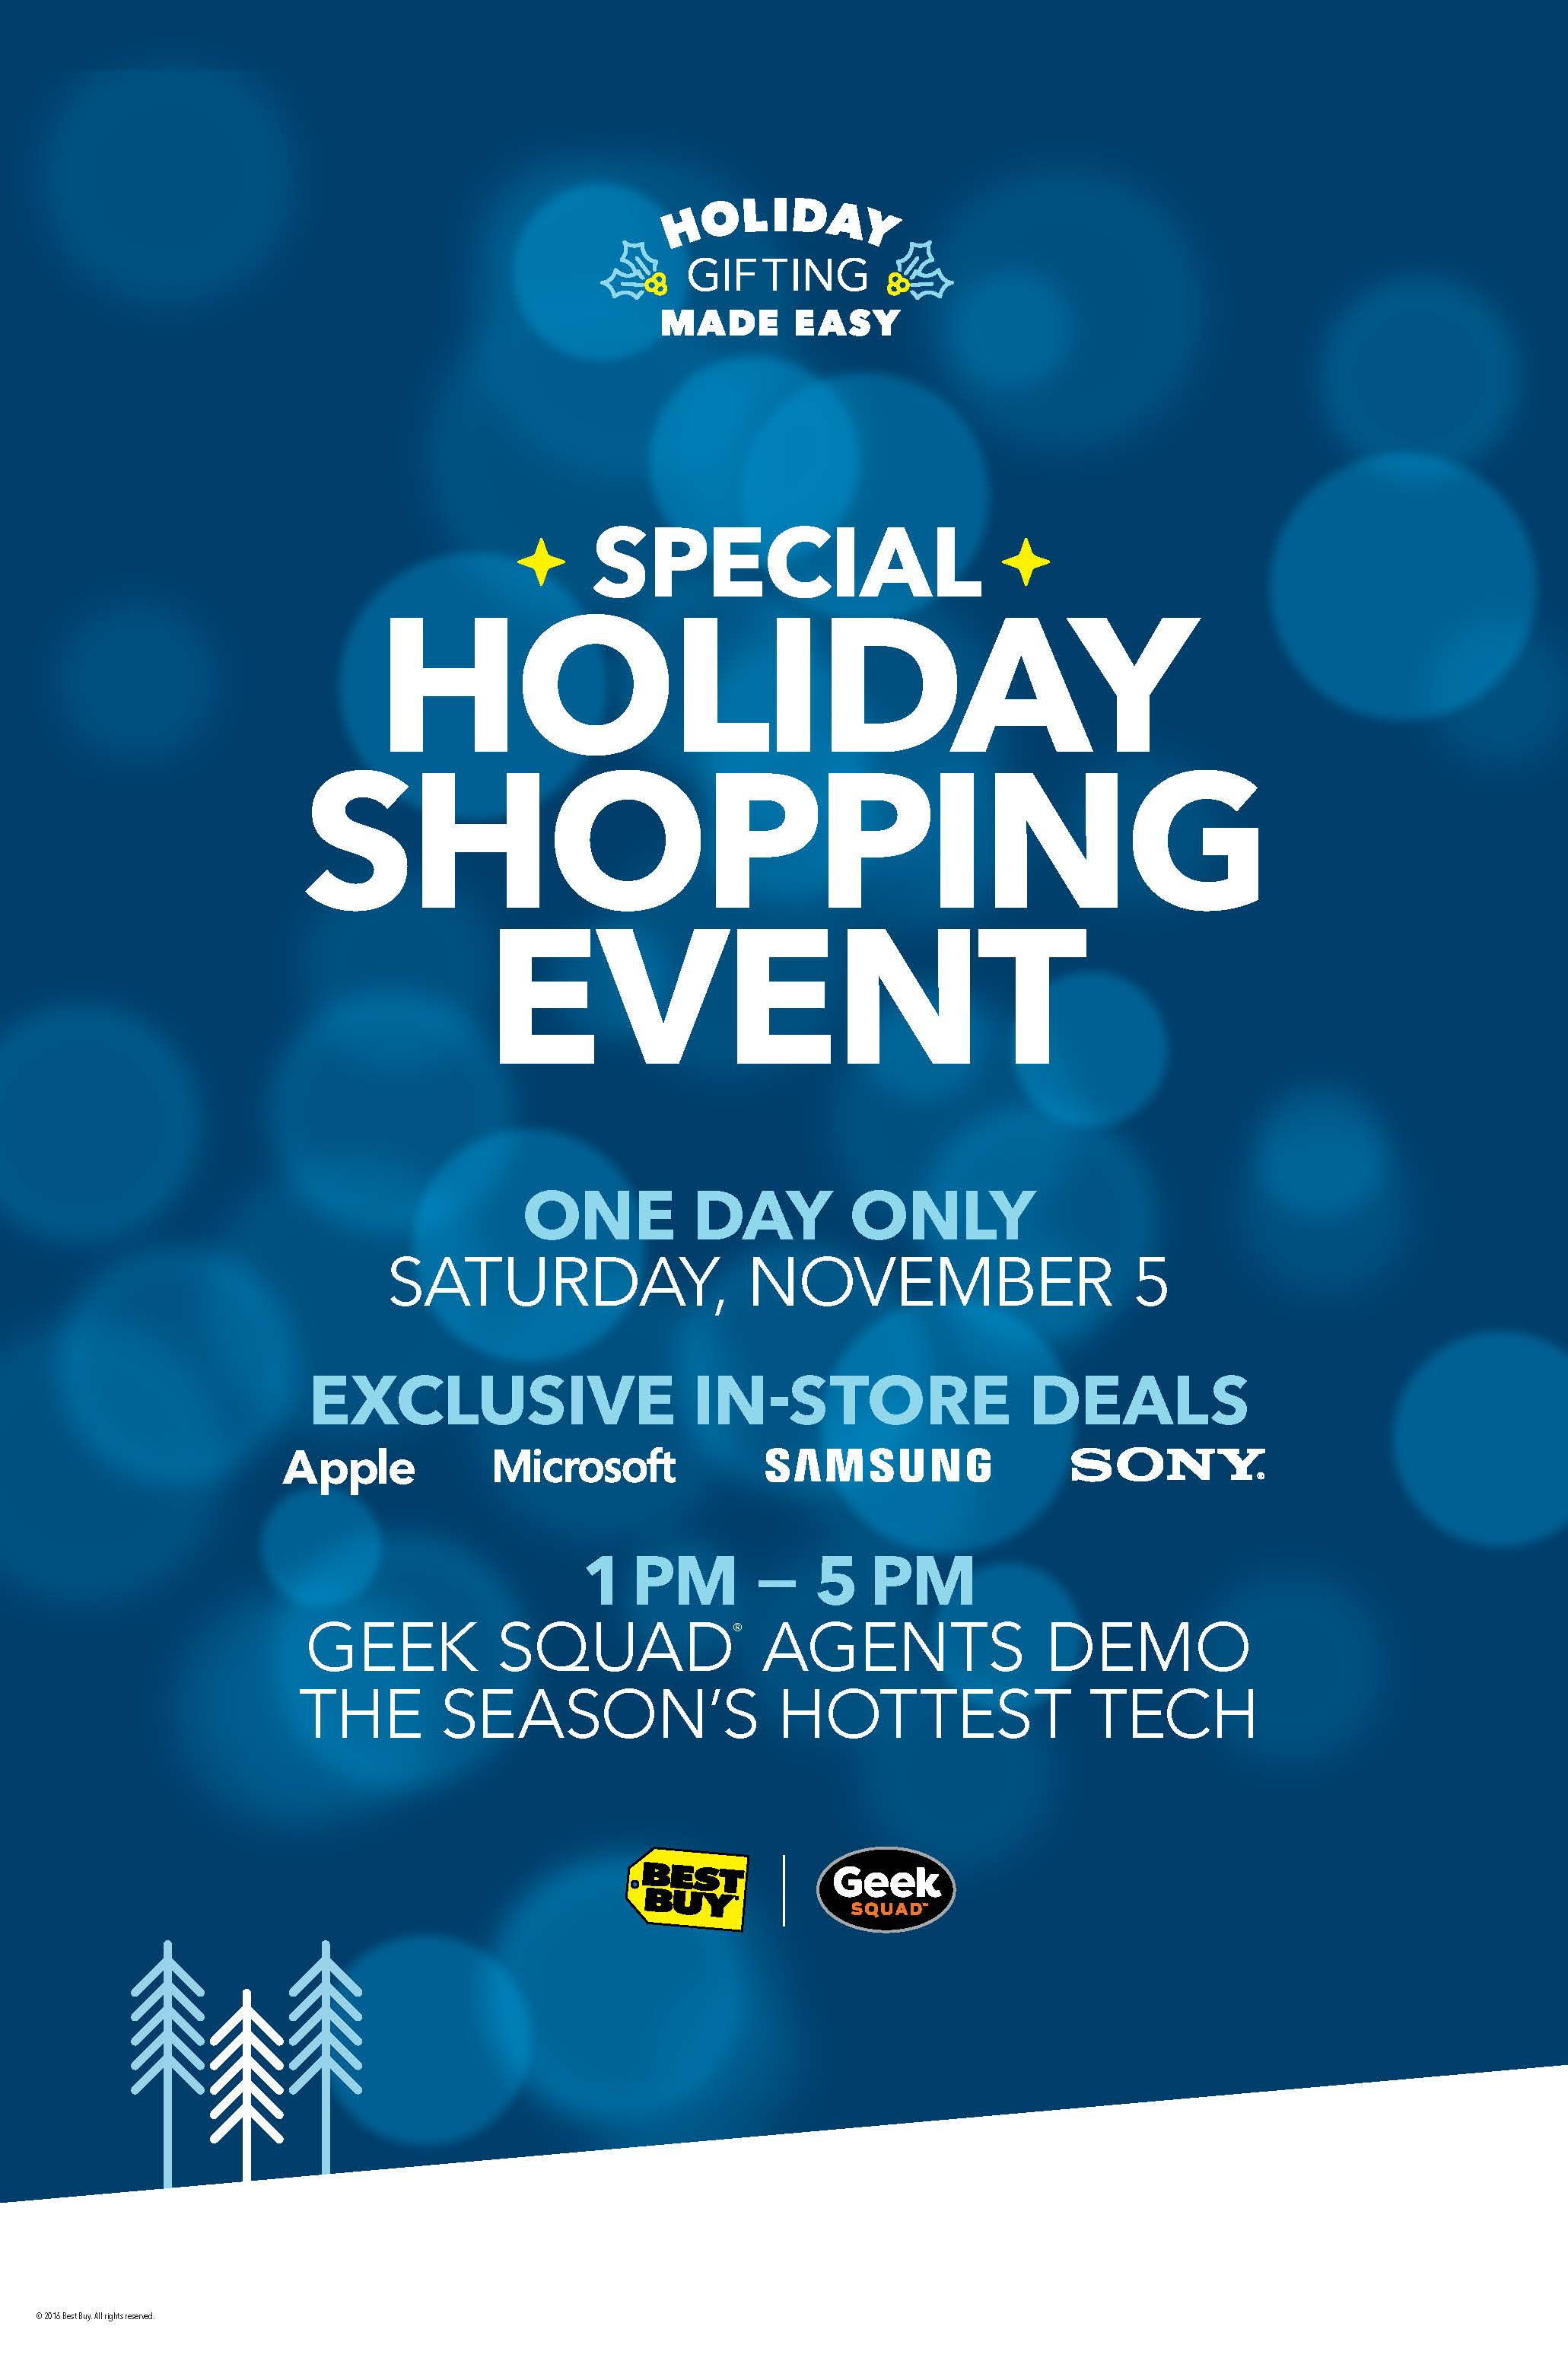 Best Buy Holiday Shopping Event. @BestBuy #GiftingMadeEasy  #ad